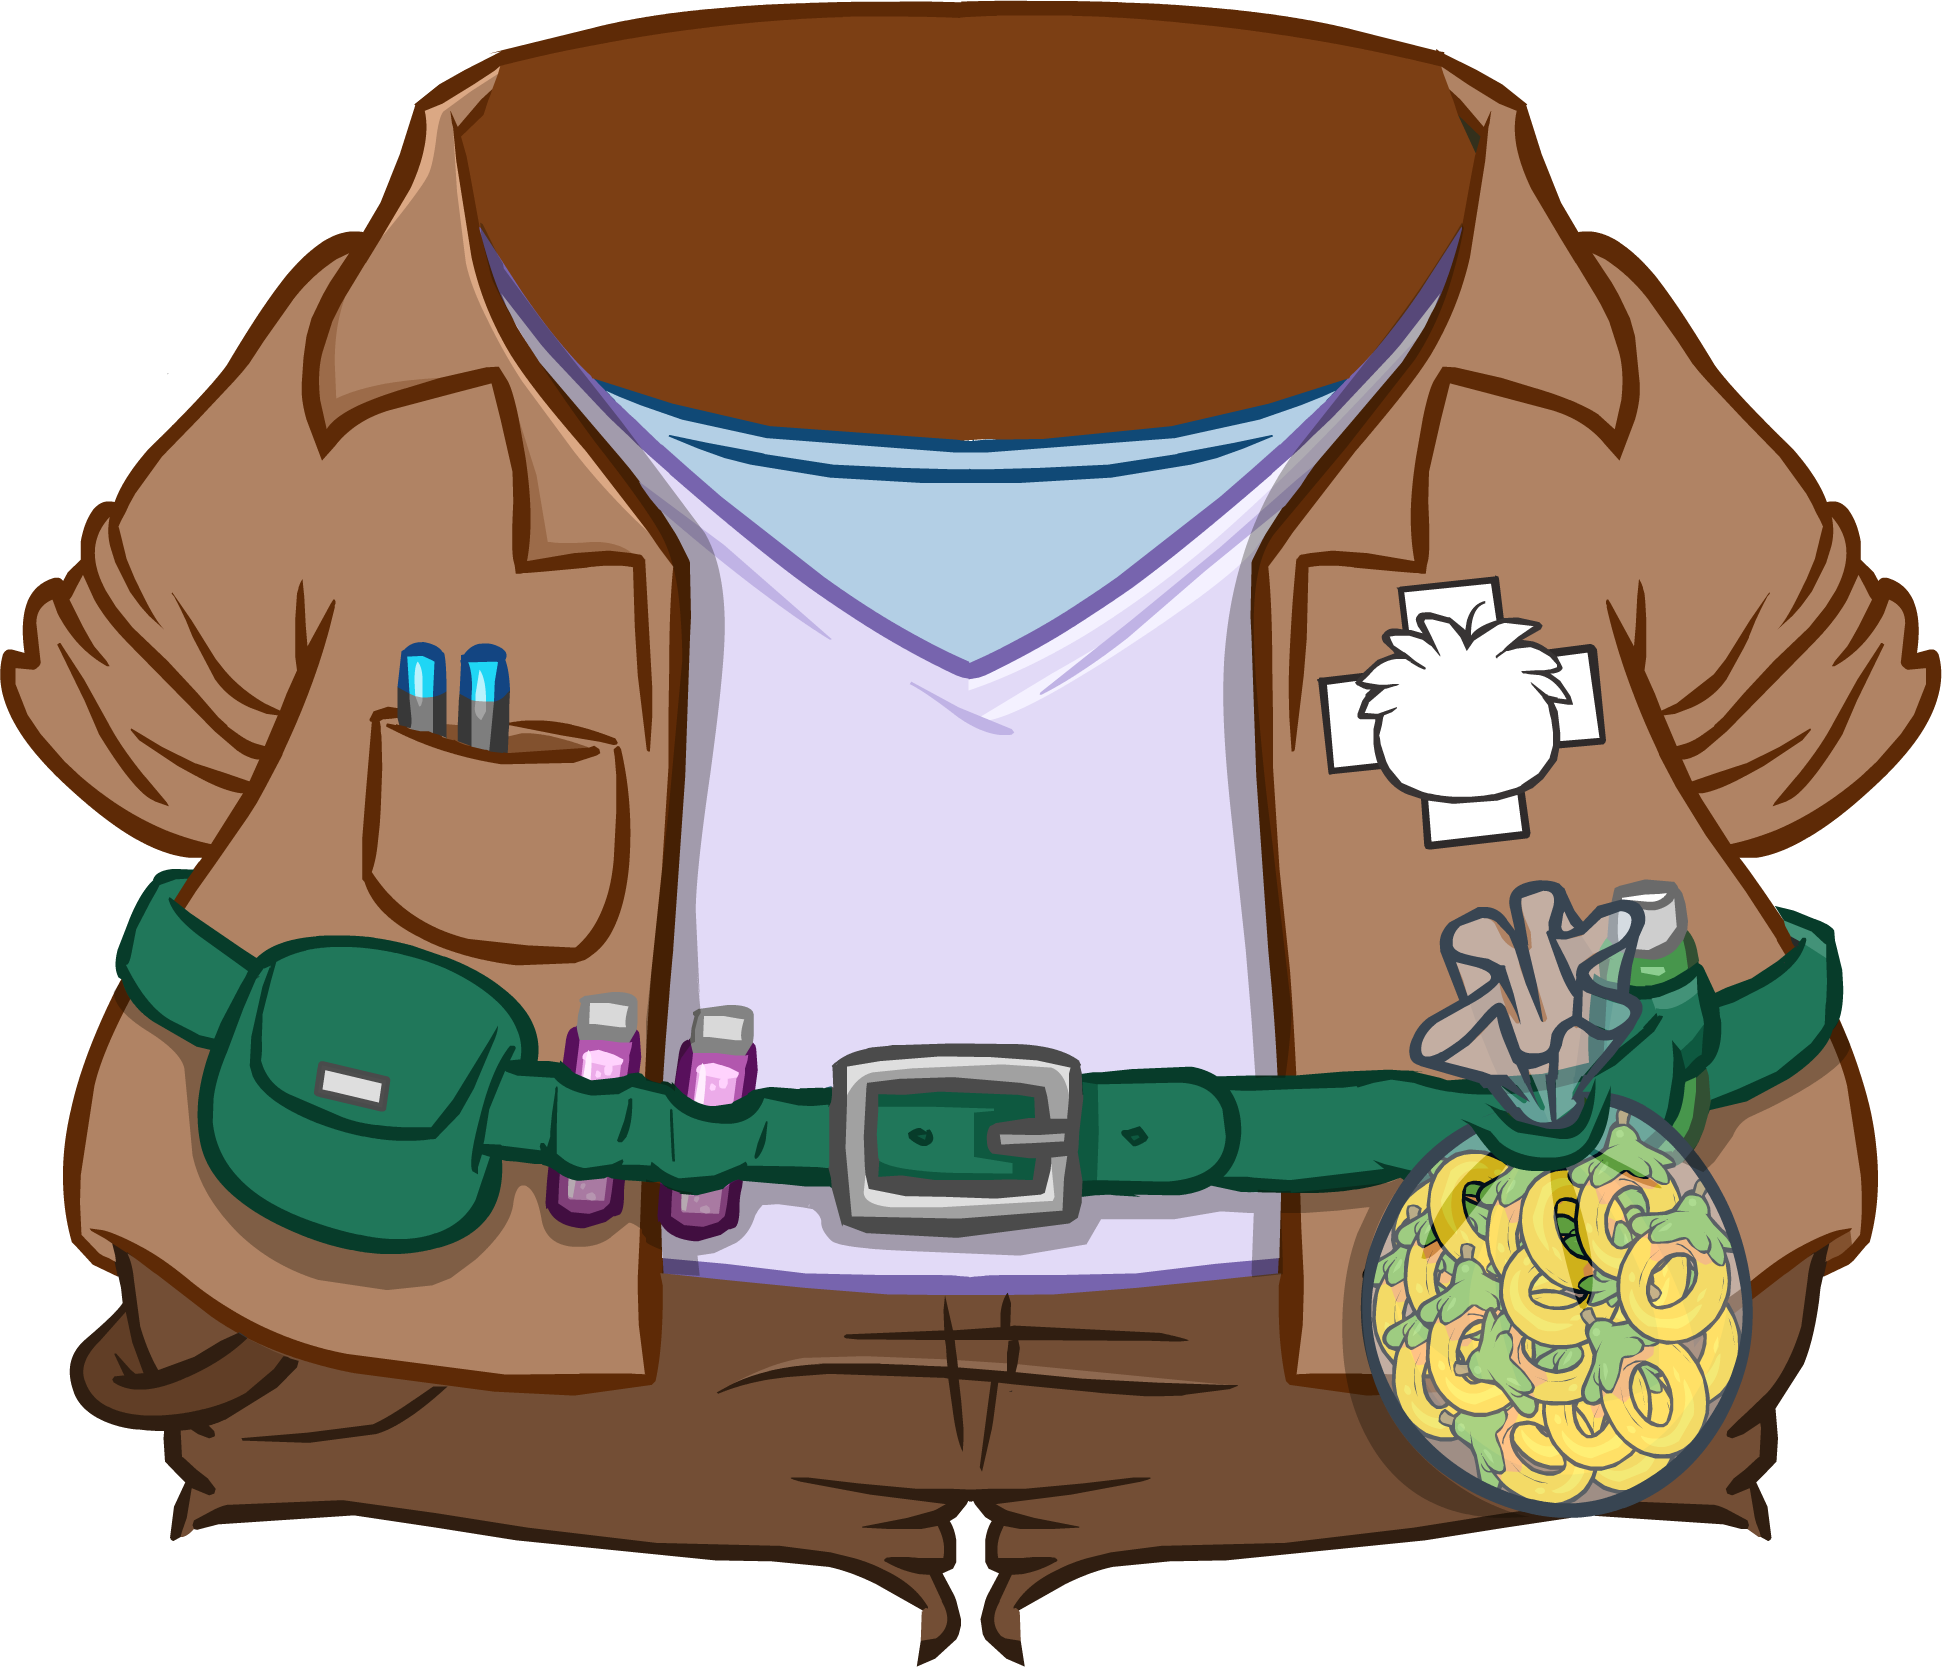 Wednesday clipart wacky clothes. Puffle trainer outfit club